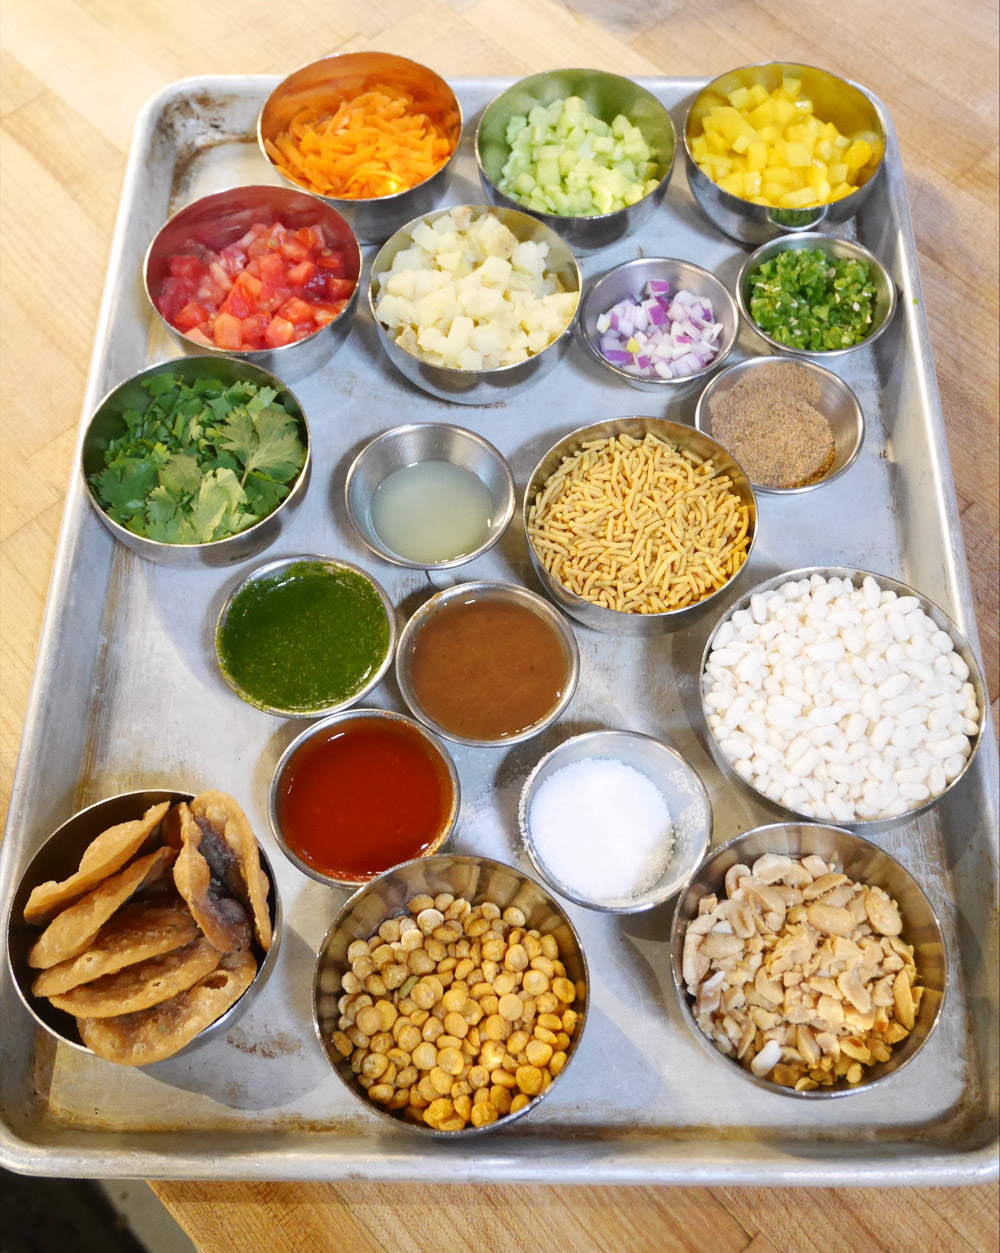 Bhel Puri Ingredients, Bollywood Theater, SE Division, Portland